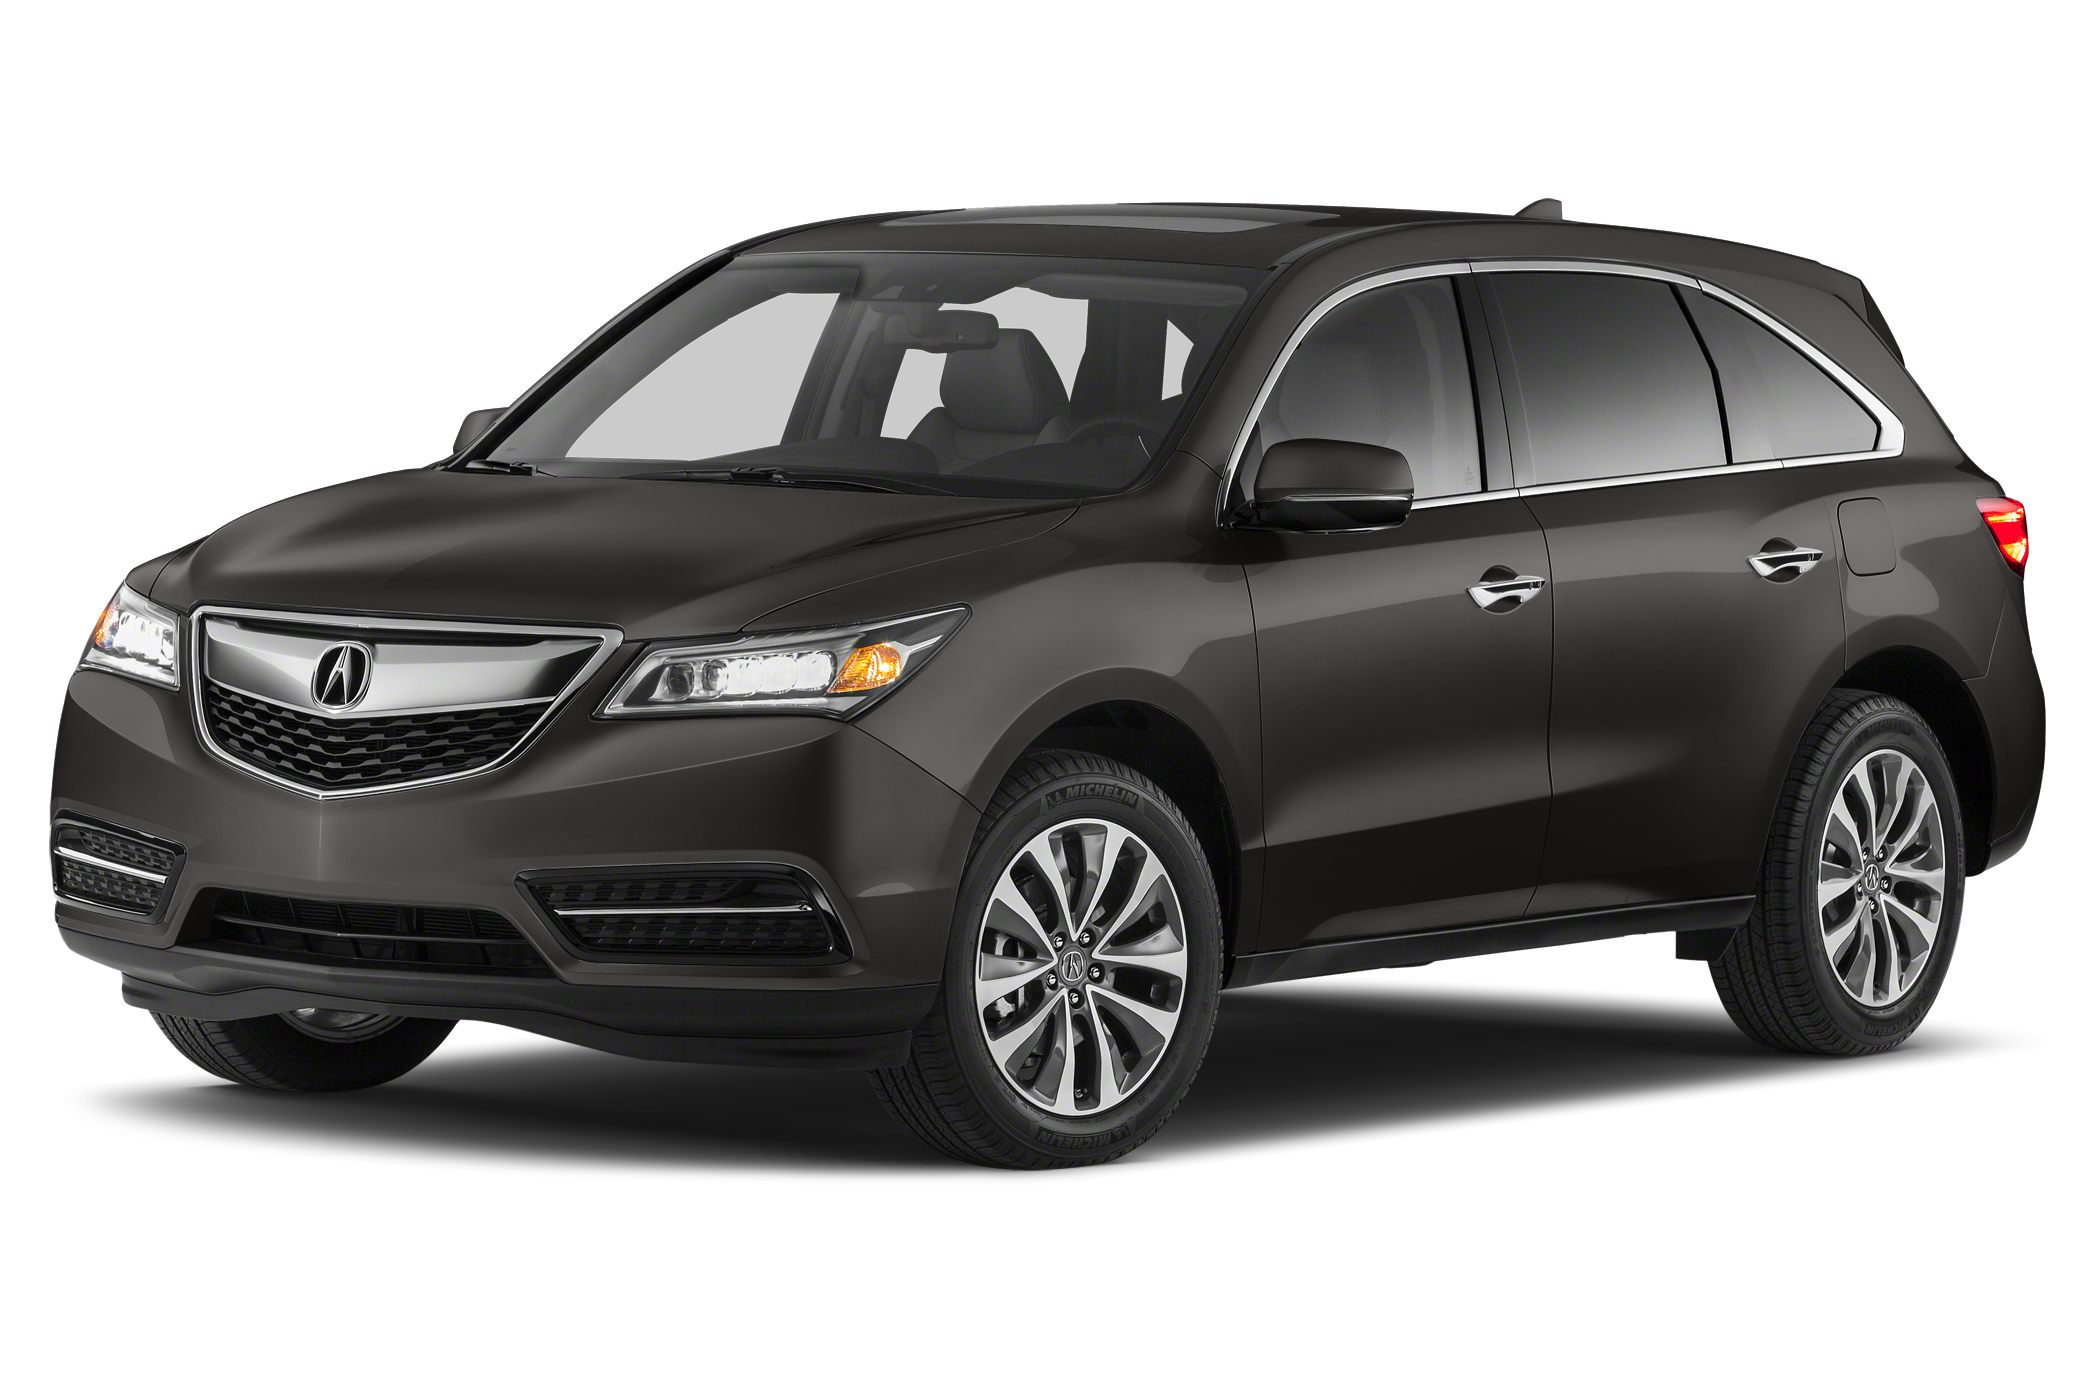 Acura Mdx 3 5 2010 Technical Specifications Interior And Exterior Photo